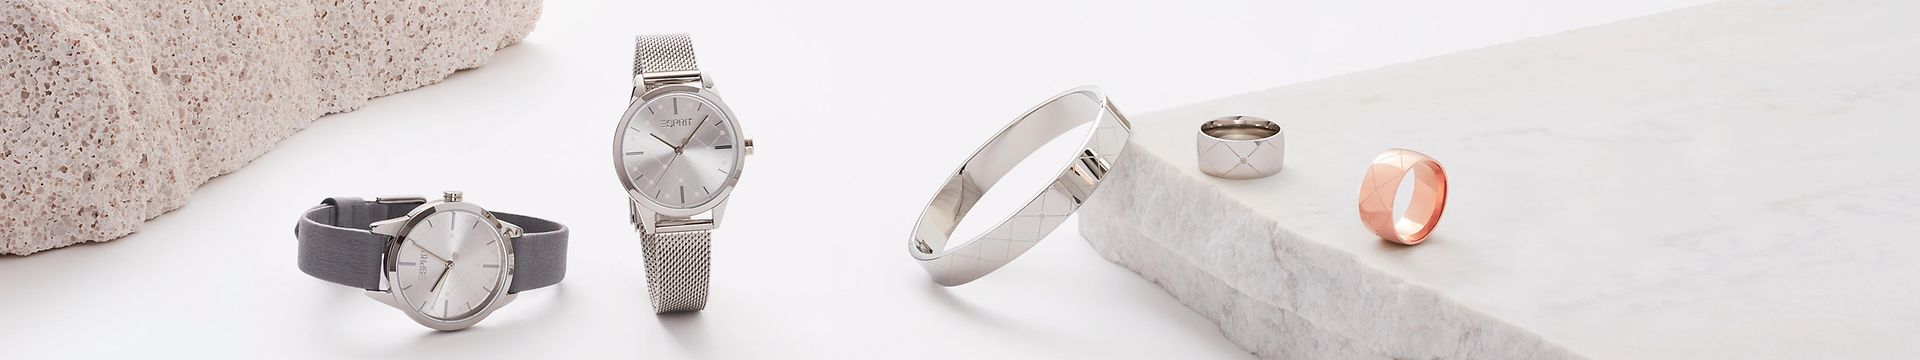 152021 - Women - Accessories - Fashion jewellery - Rings - TC banner - IMG